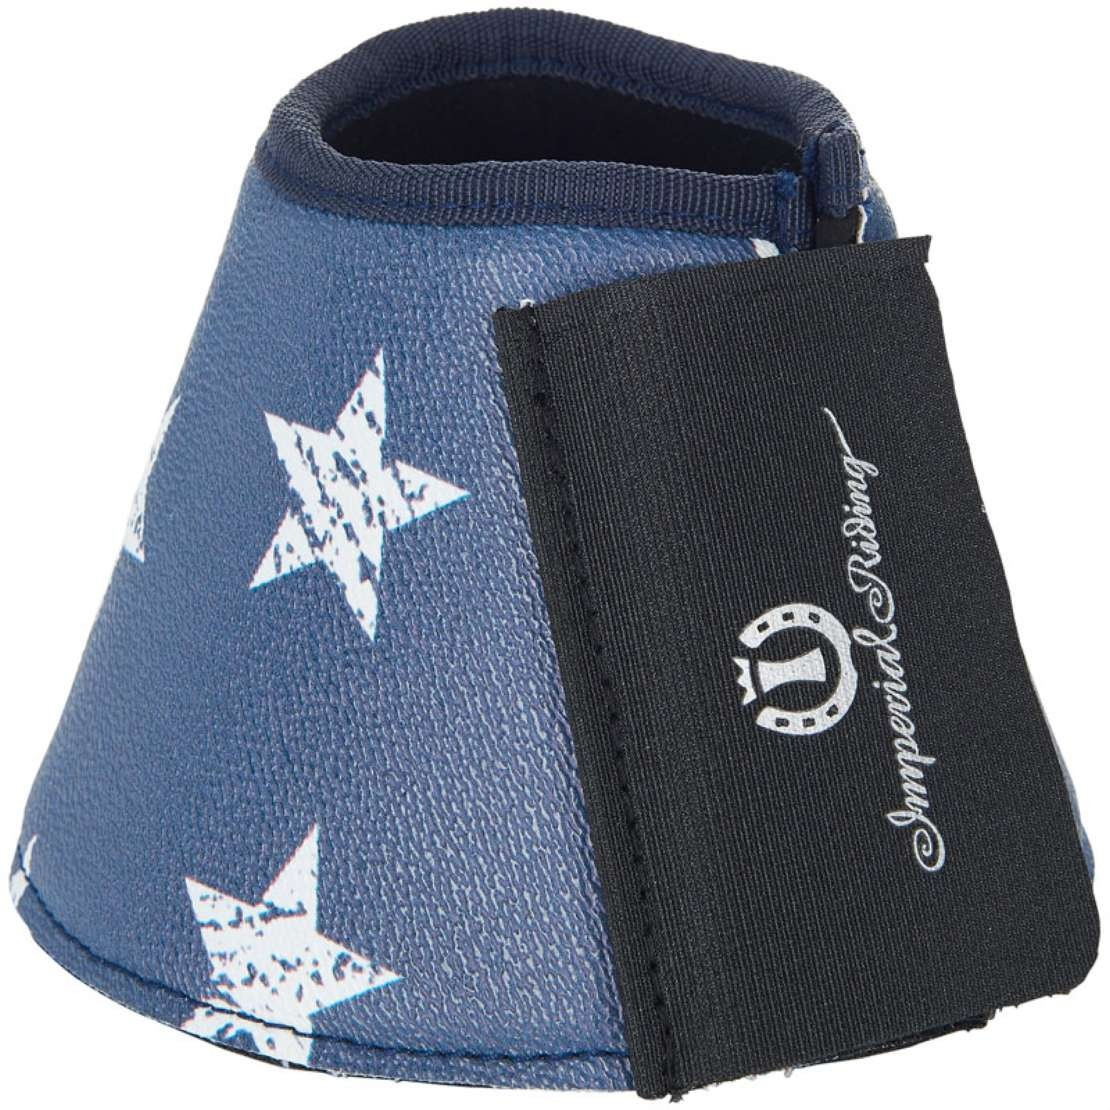 Hufglocken Pattern WB Navy Star